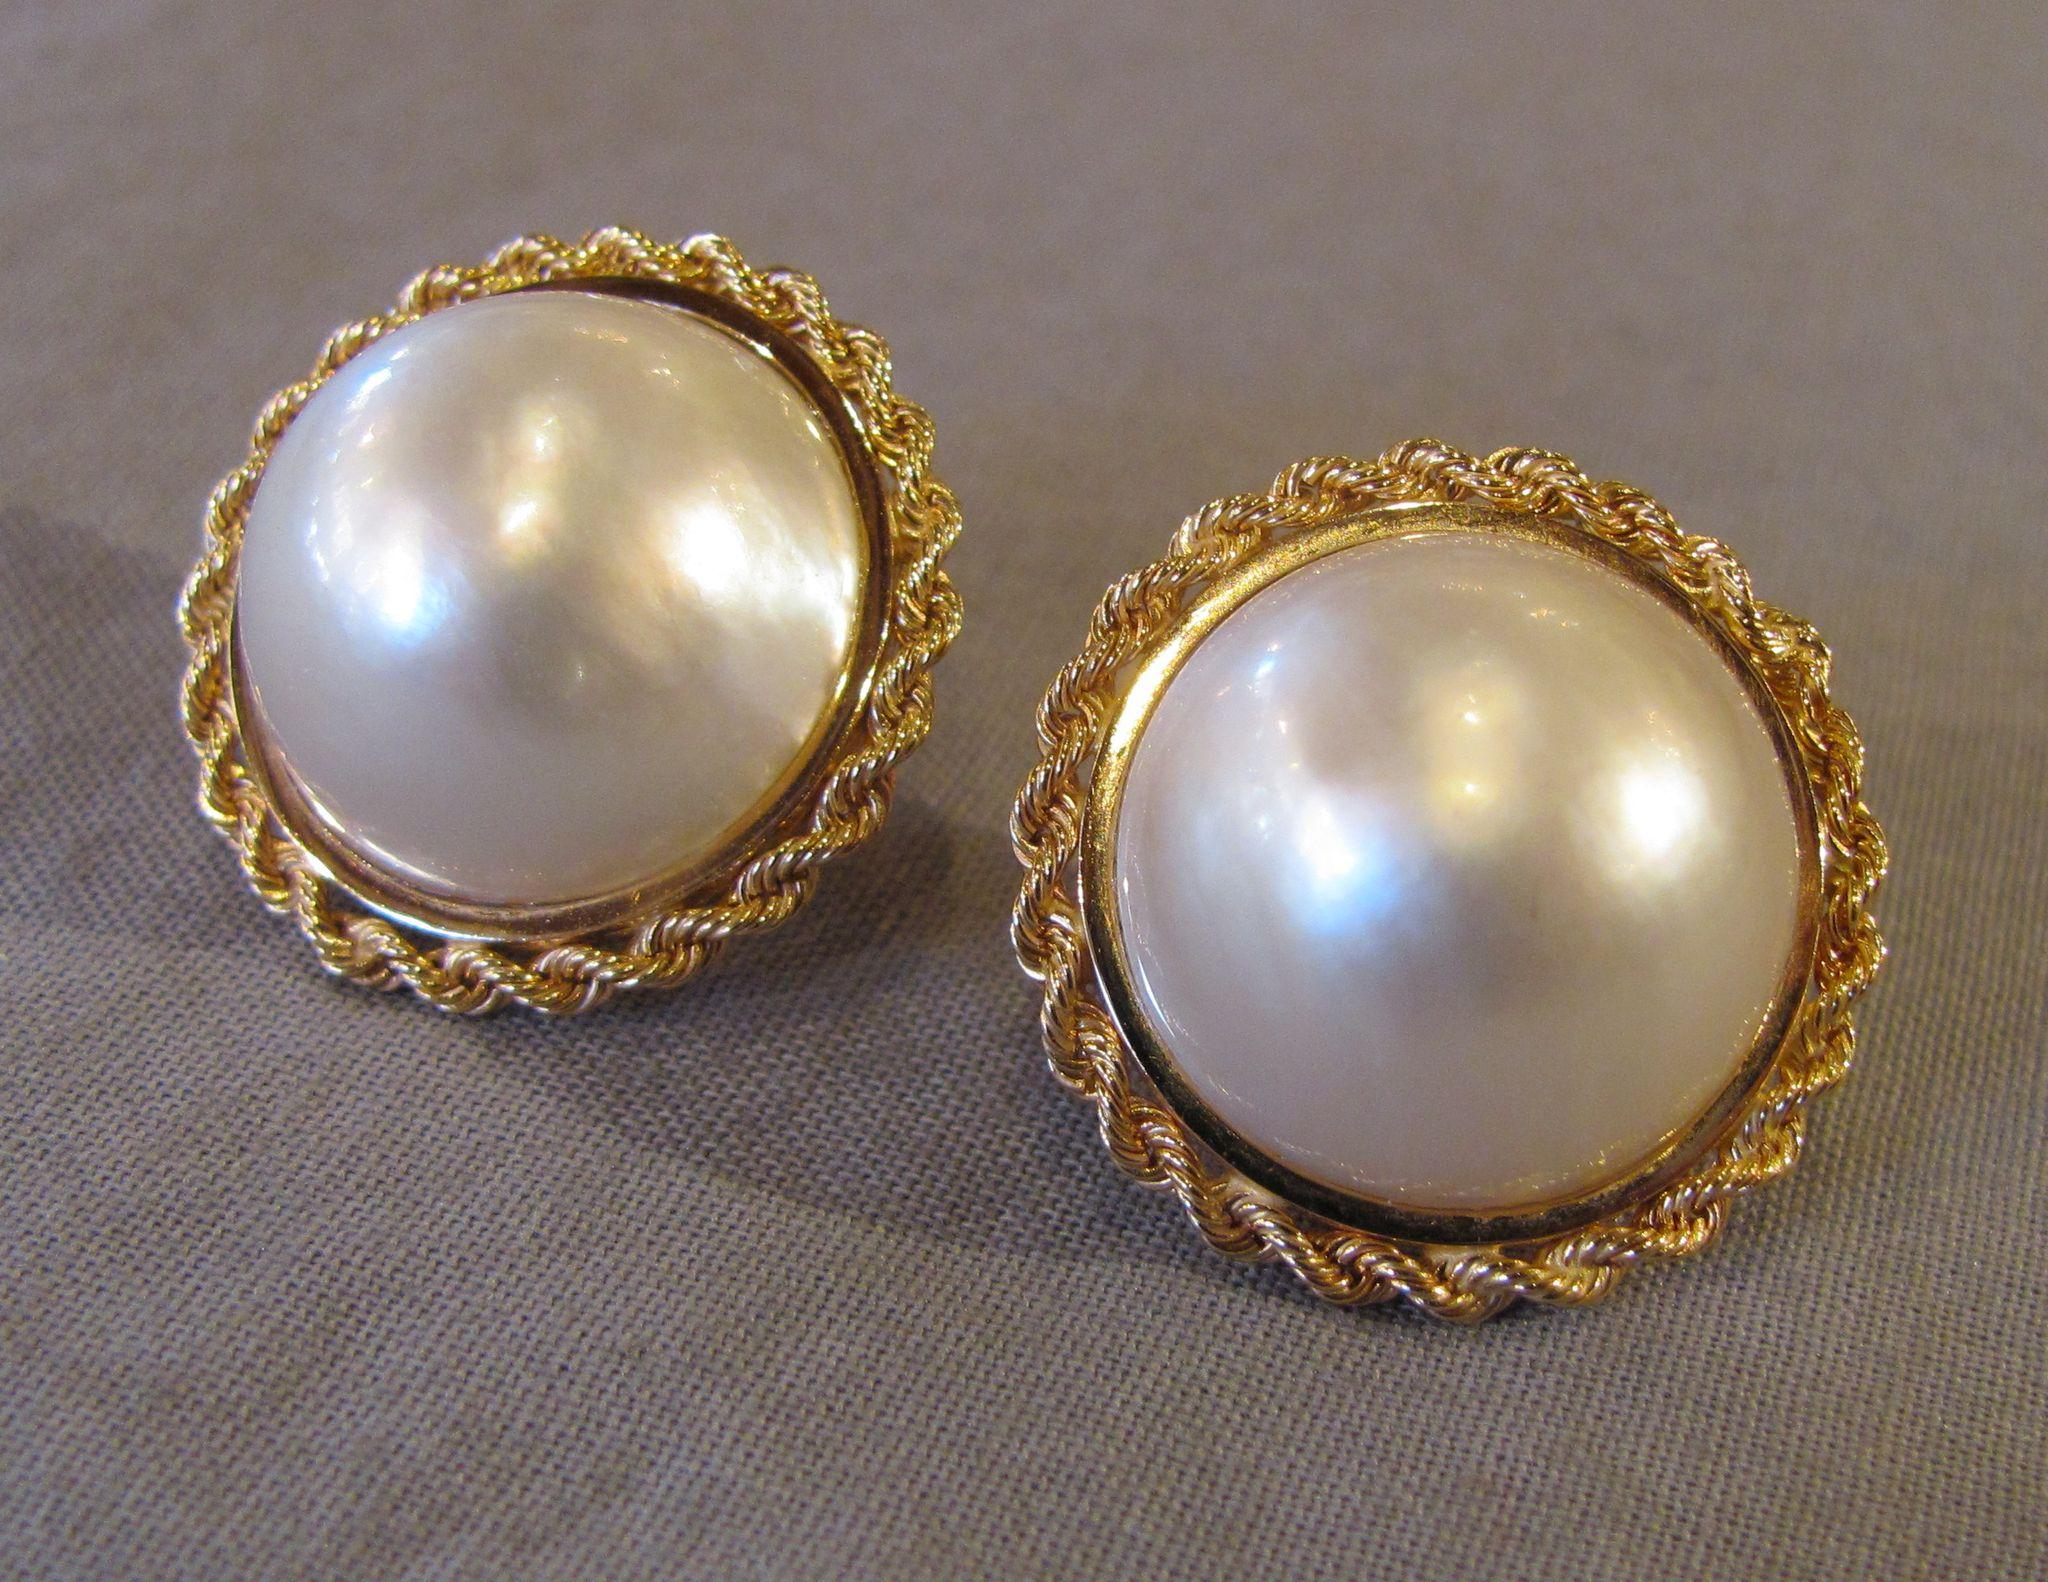 Vintage 1960 S 14k Mabe Pearl Earrings 24mm Back From